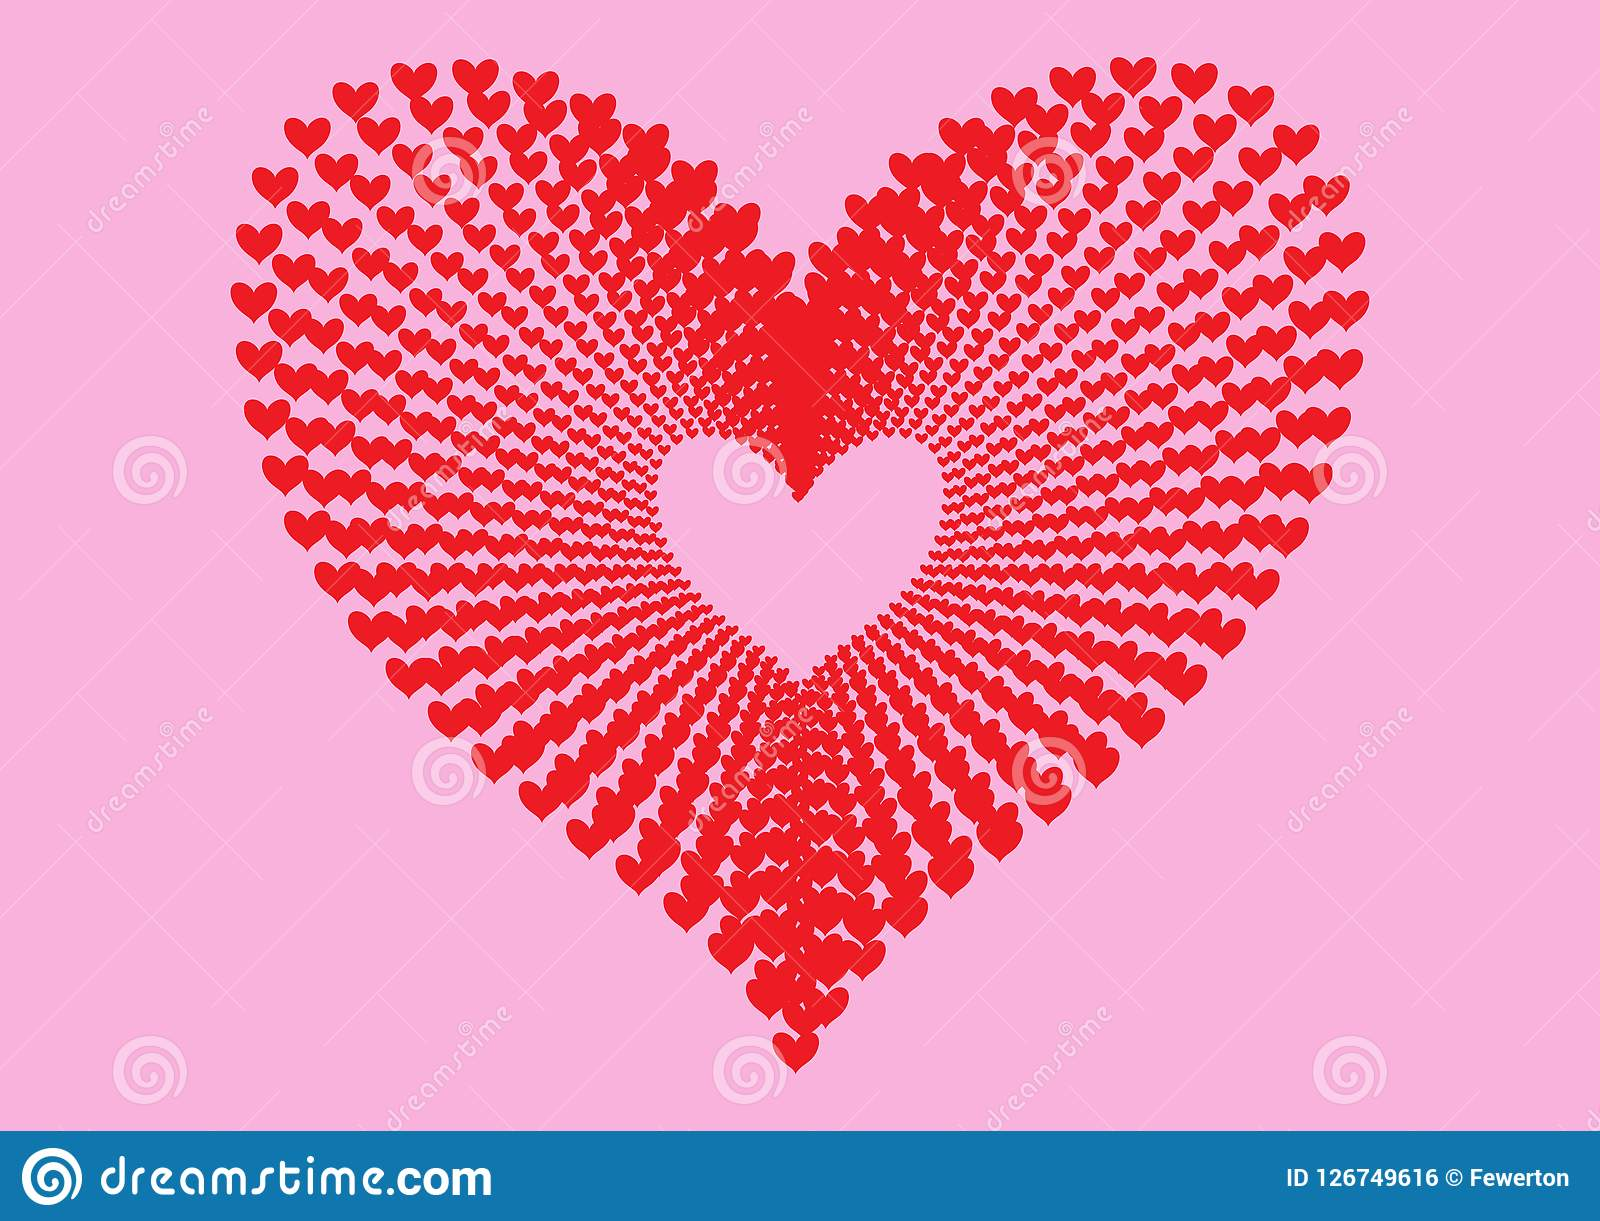 Red Hearts Pattern Forming The Shape Of A Large Heart In Concentric